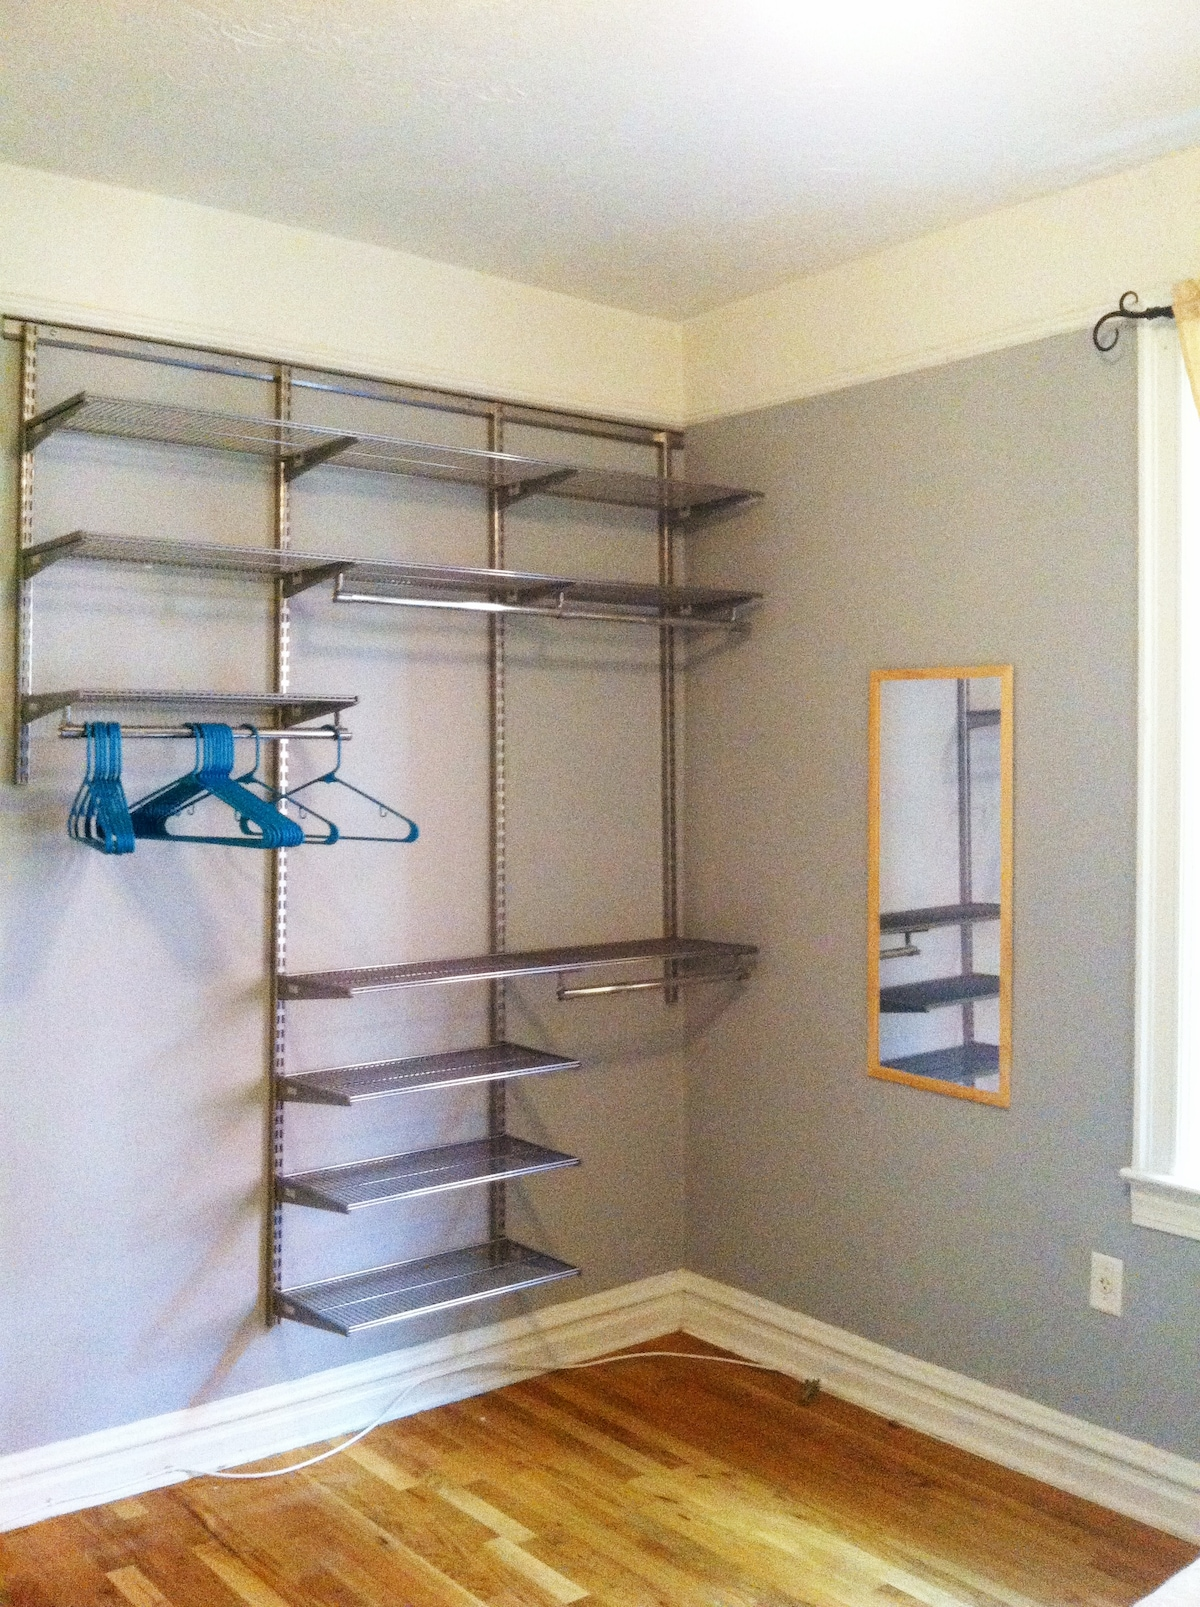 We have ample storage needs for all of your belongings.